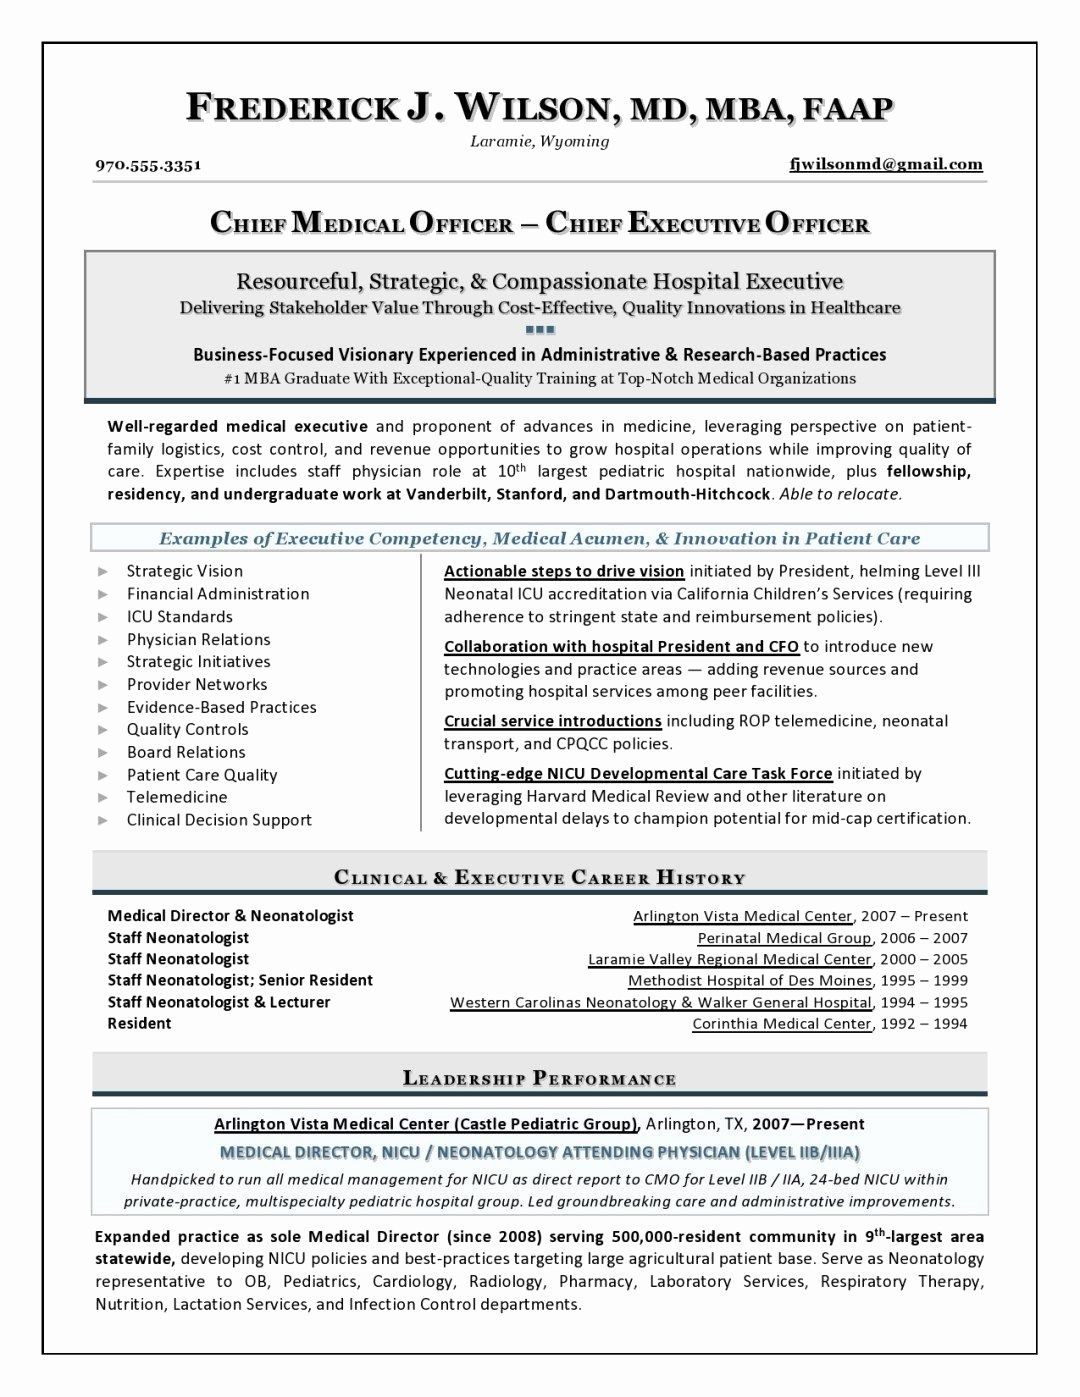 Medical History Form Template Best Of Freelance Resume Writer Jobs Executive Resume Resume Writer Resume Writing Services